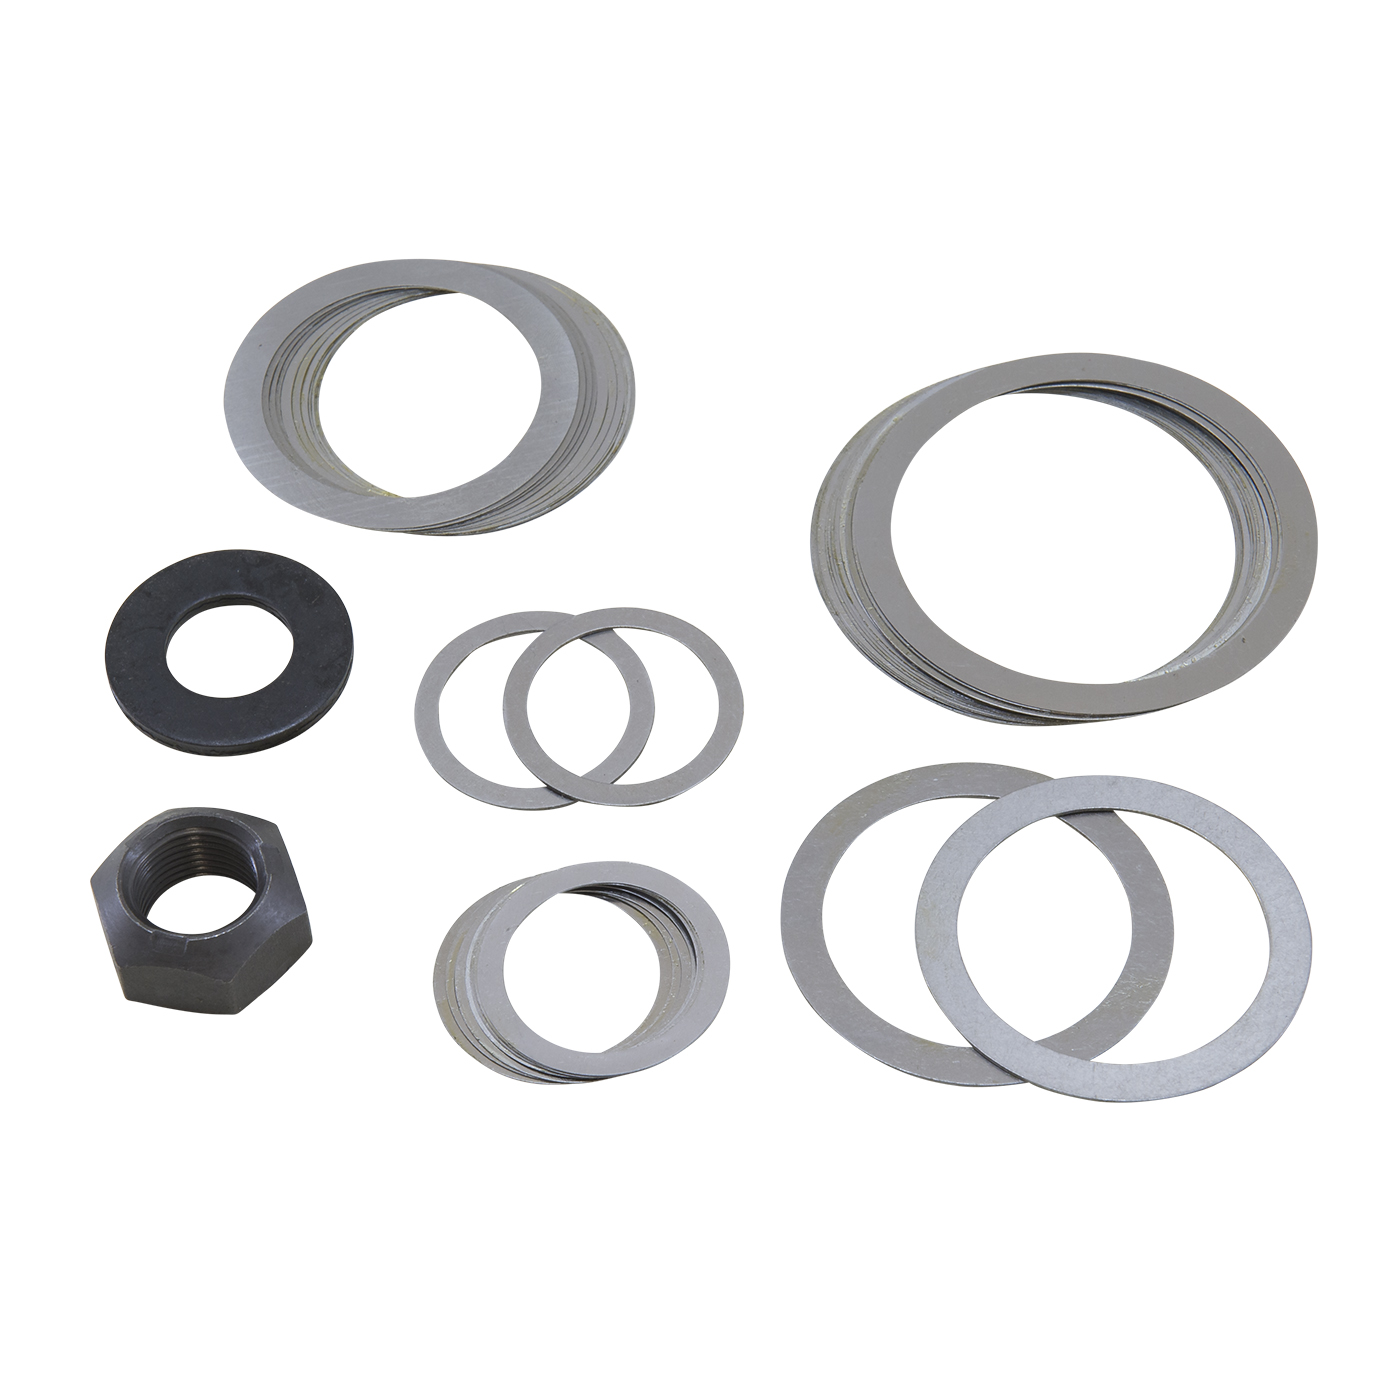 SK 706377 - Replacement complete shim kit for Dana 30 front